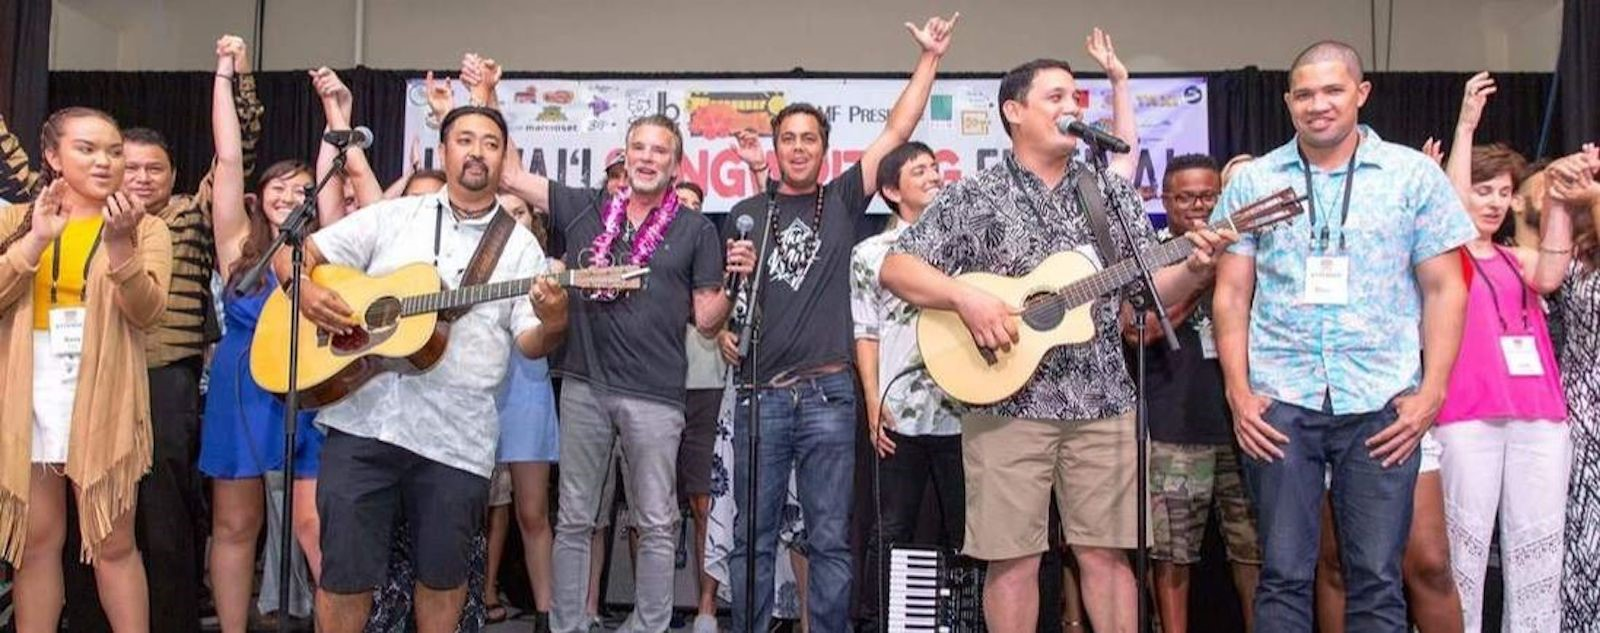 Kauai Songwriting Festival